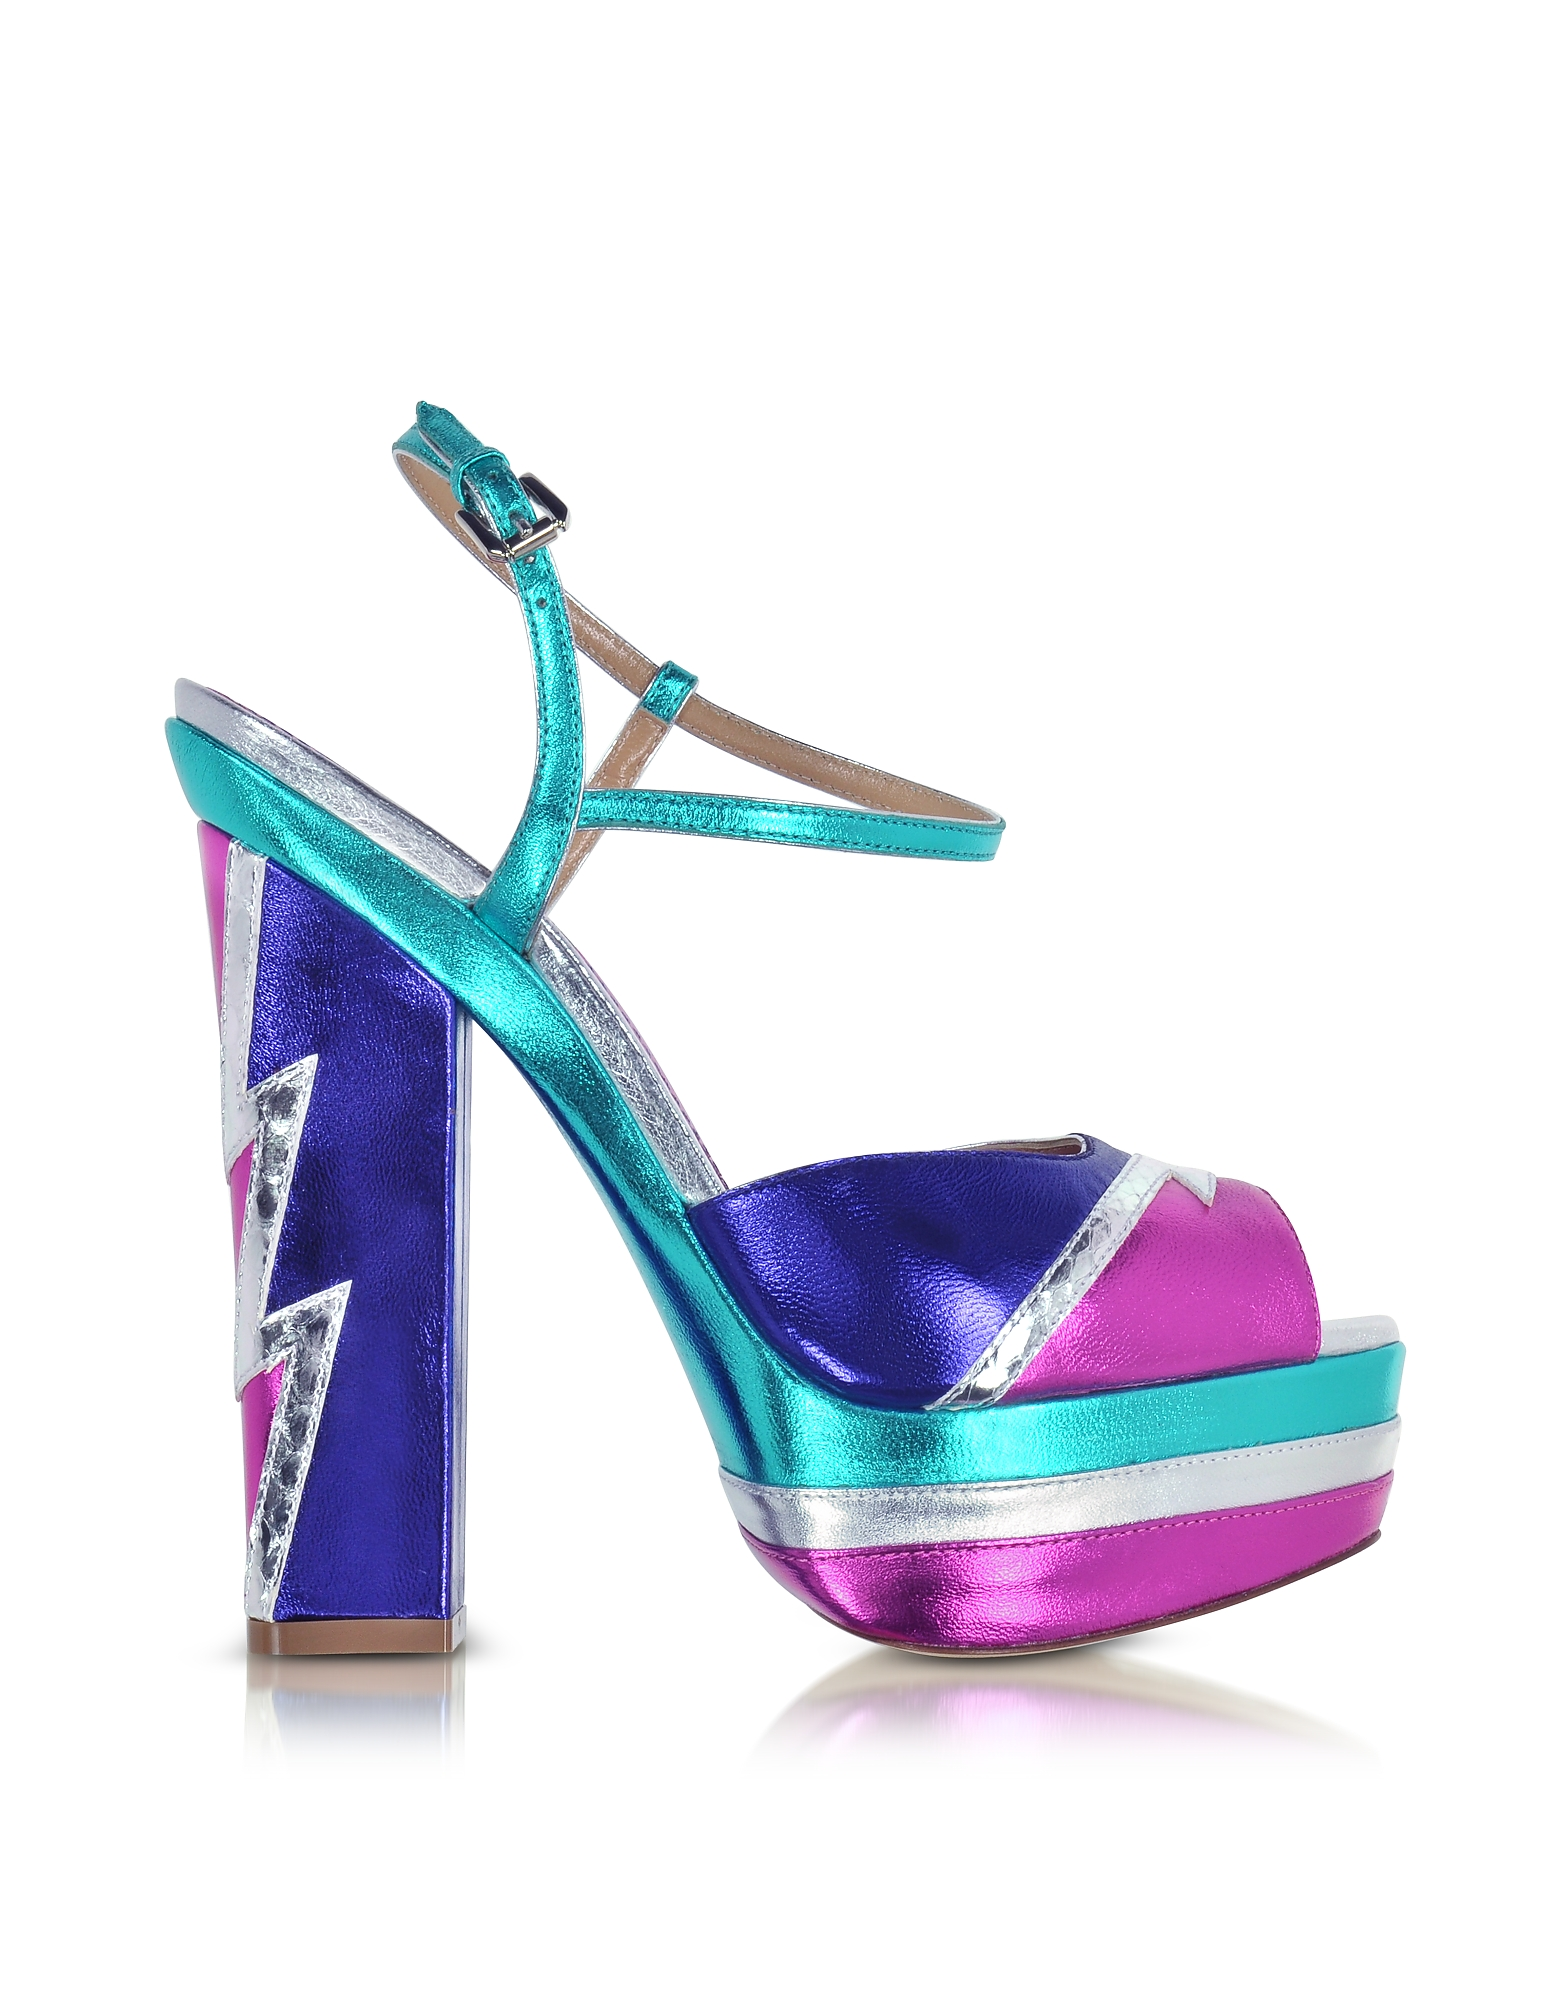 DSquared2 Shoes, Glam Flash Platform Ziggy Sandal